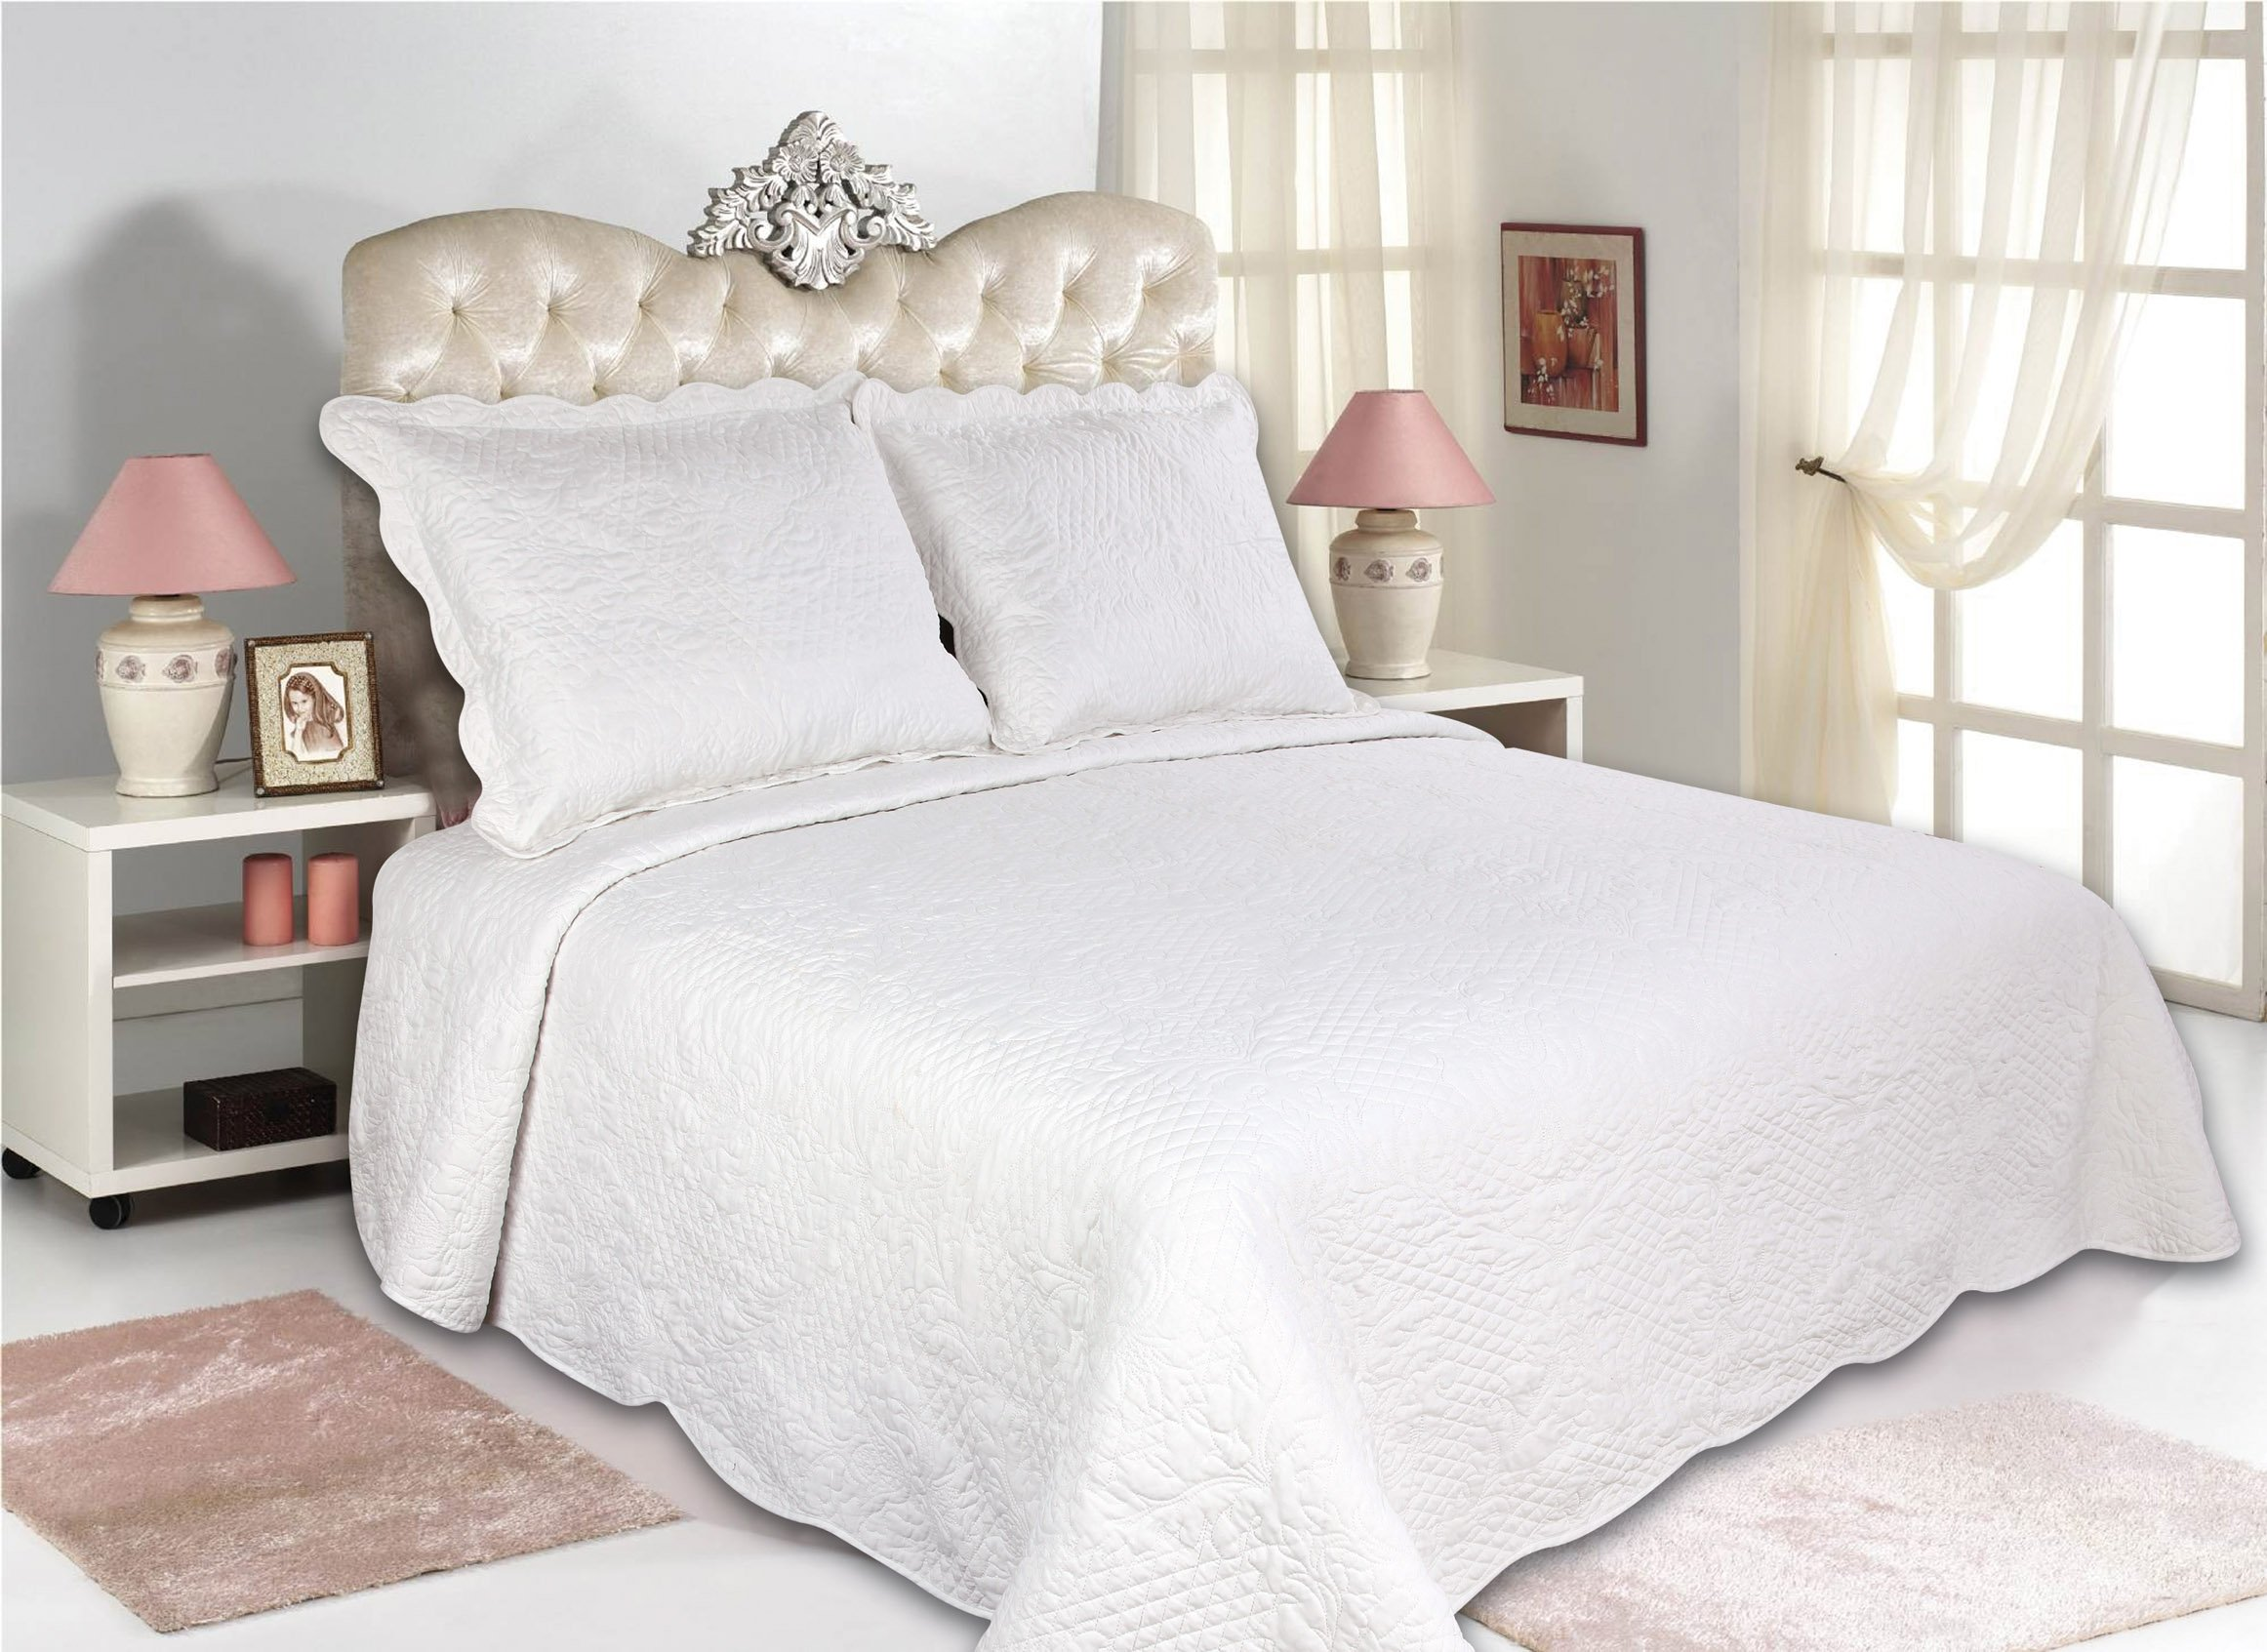 All for You 3pc Reversible Quilt Set, Bedspread, and Coverlet-86''x 86''-white color